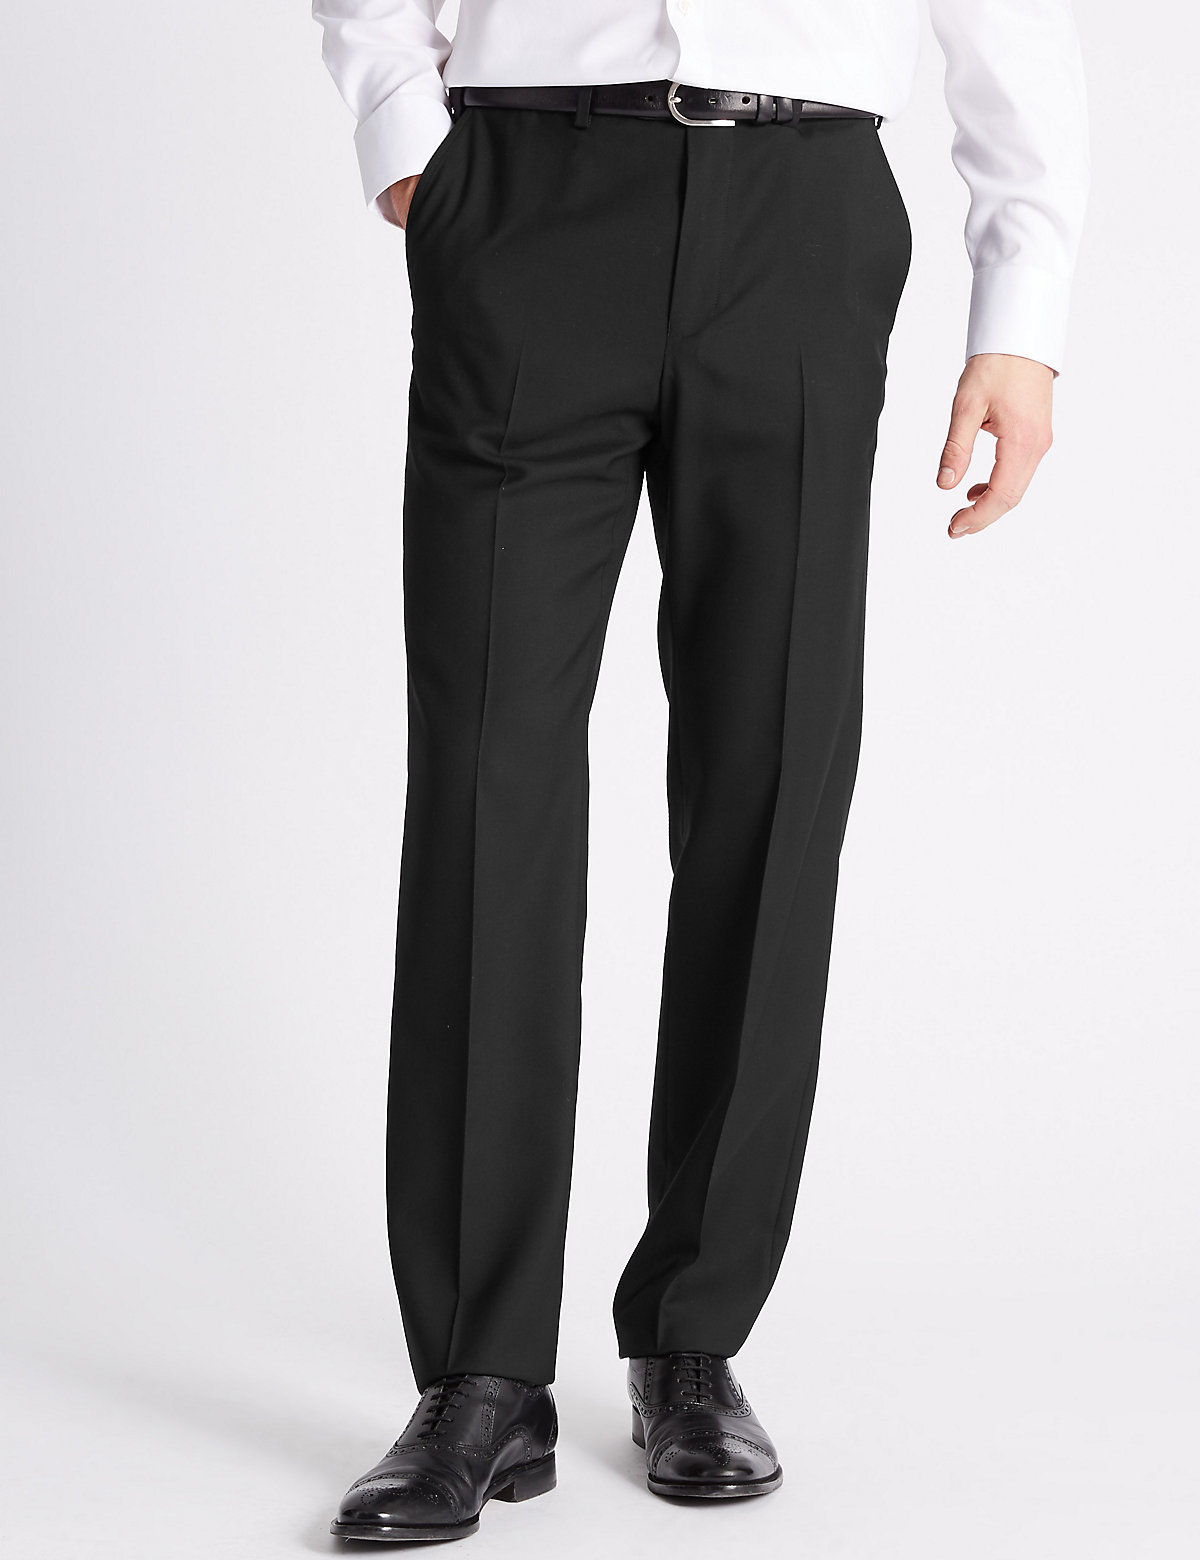 Marks & Spencer Black Tailored Fit Wool Blend Flat Front Trousers